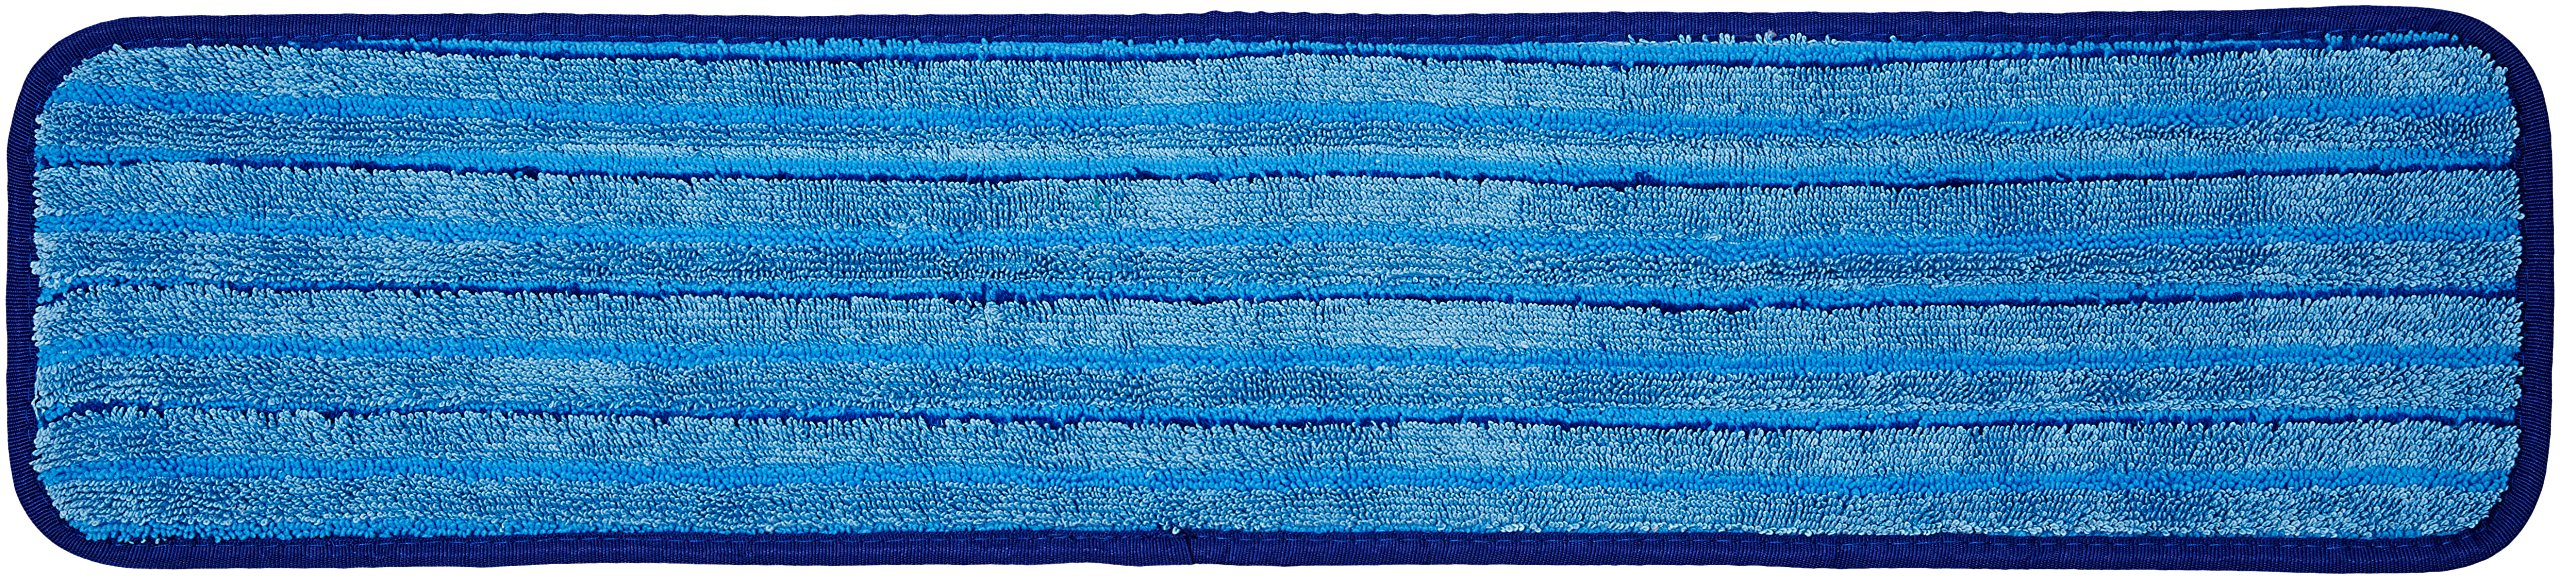 AmazonBasics Microfiber Damp Mop Cleaning Pad with Stripes, 24 Inch, 12-Pack by AmazonBasics